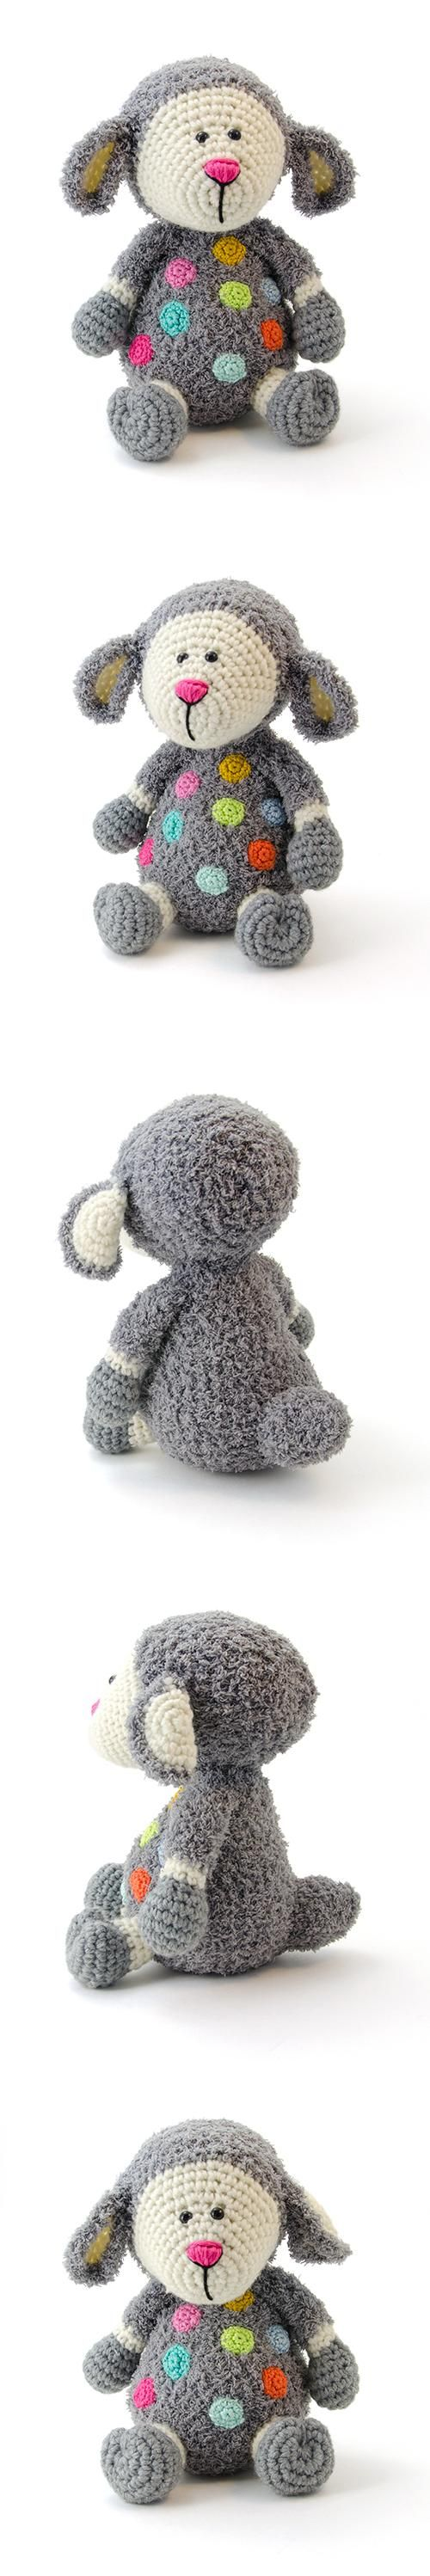 Sofi The Sheep Amigurumi Pattern